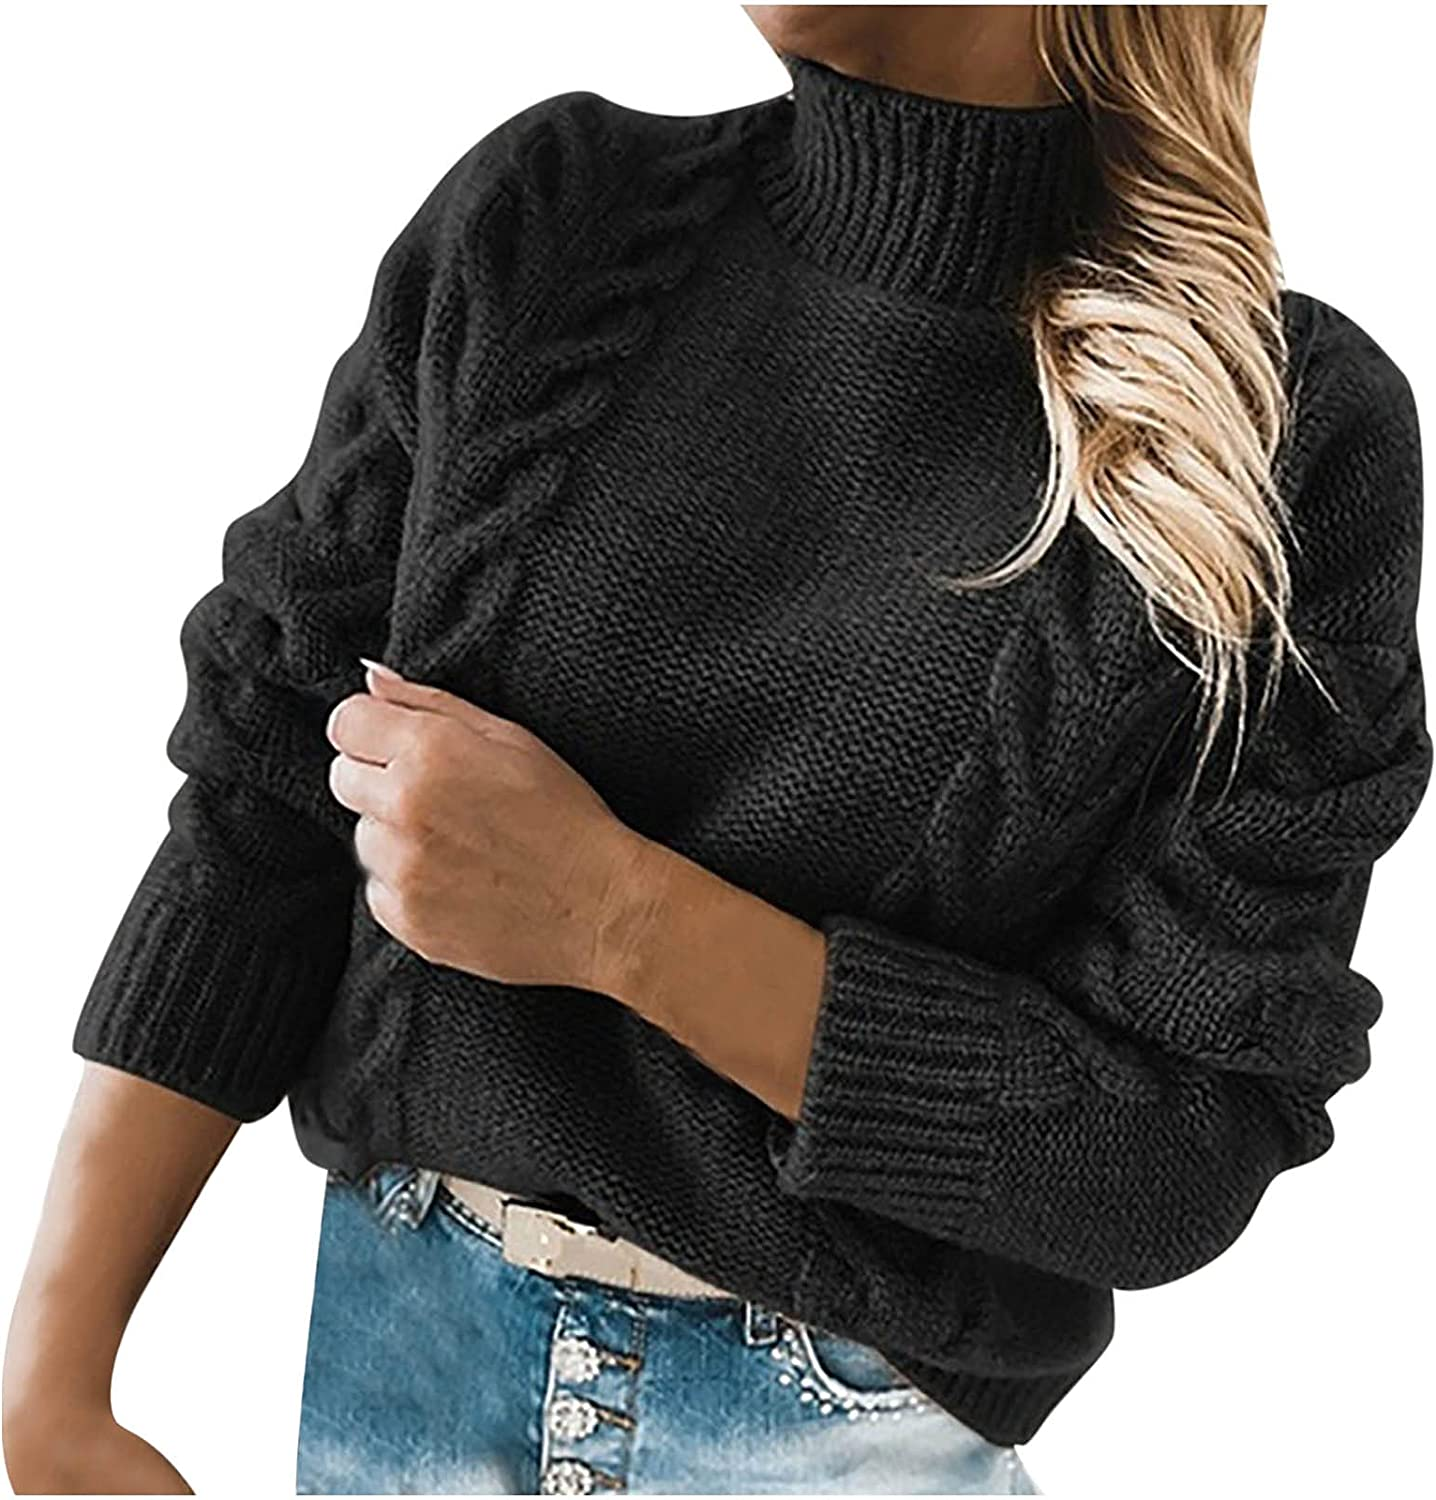 Women's Turtleneck Pullover Tops for Ladies Autumn Winter Knitted Sweater Fashion Casual Long Sleeve Blouse Shirts